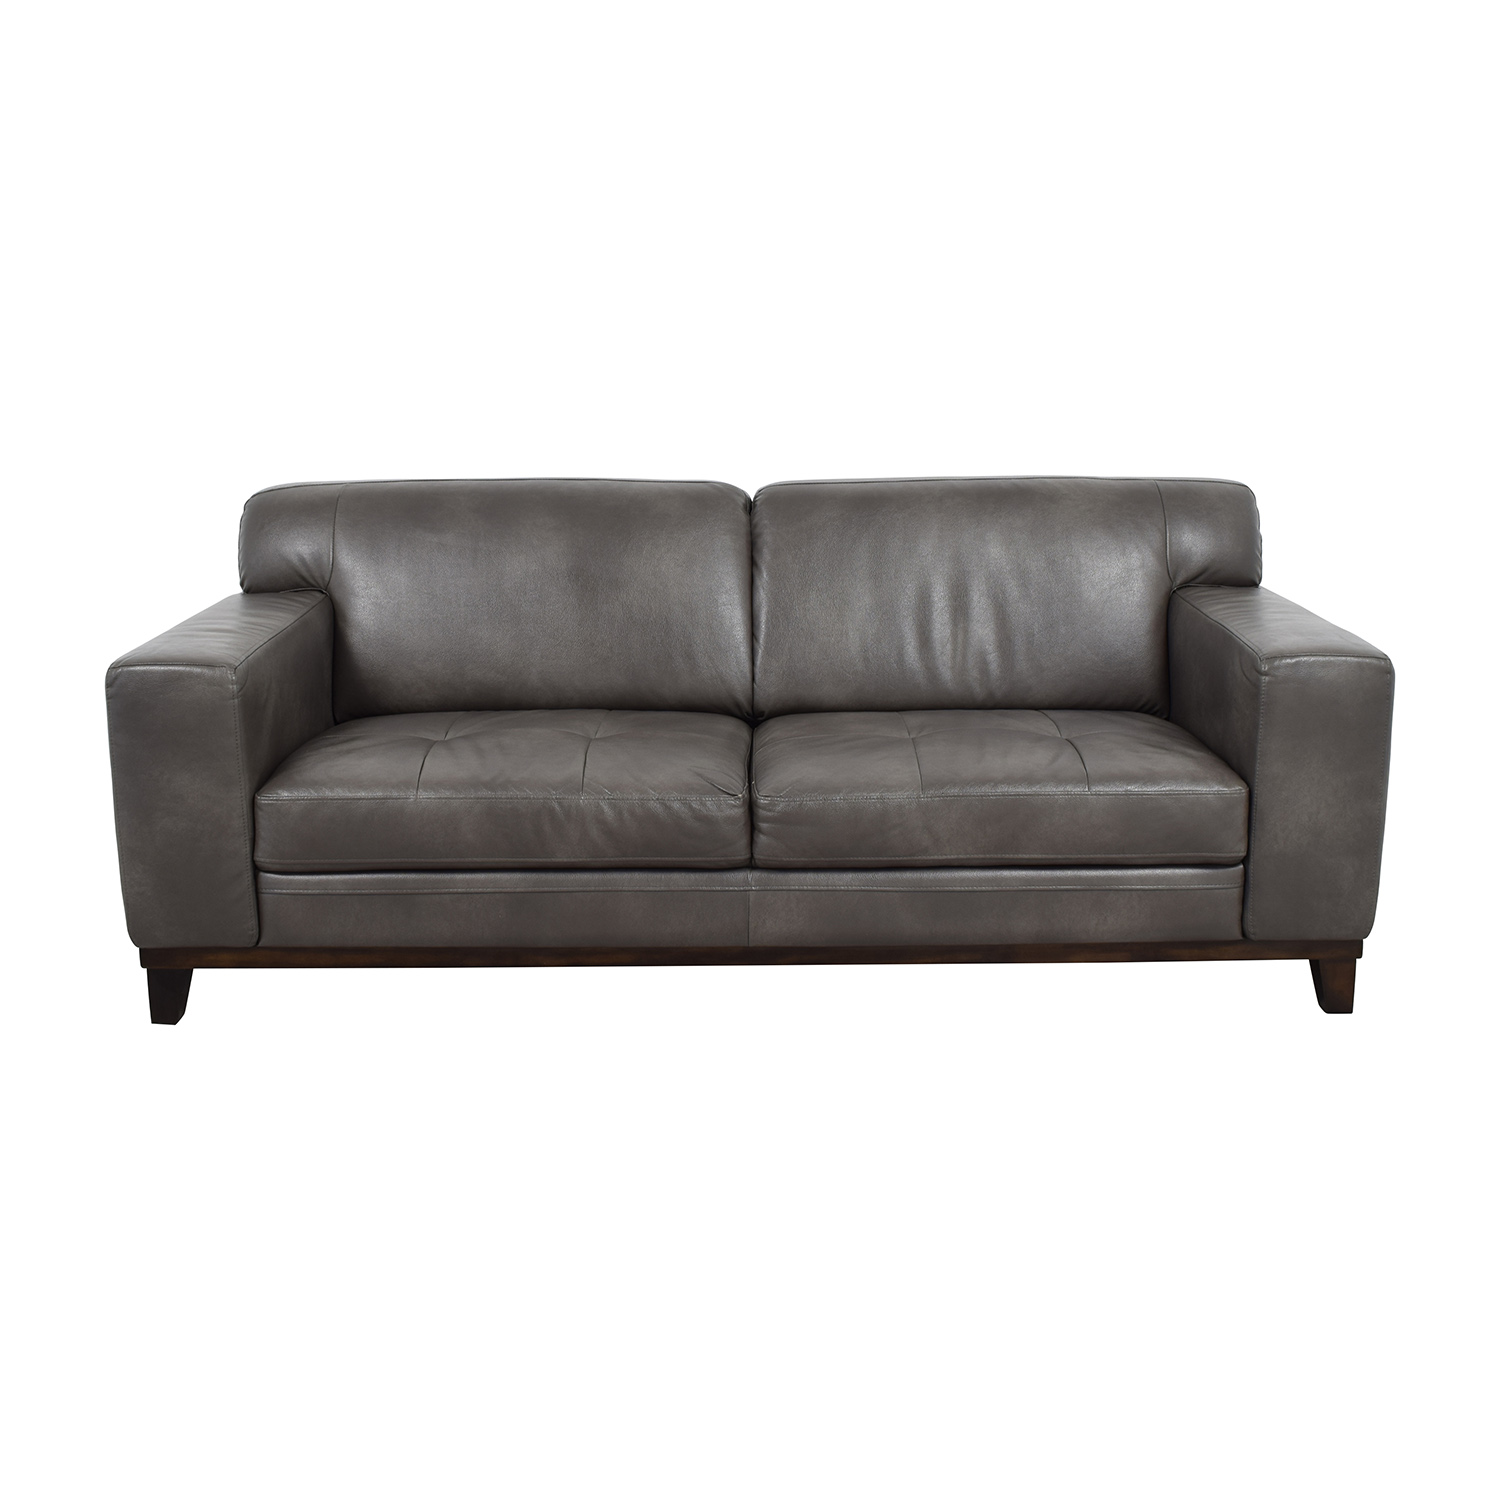 buy Raymour & Flanigan Raymour & Flanigan Grey Leather Couch online